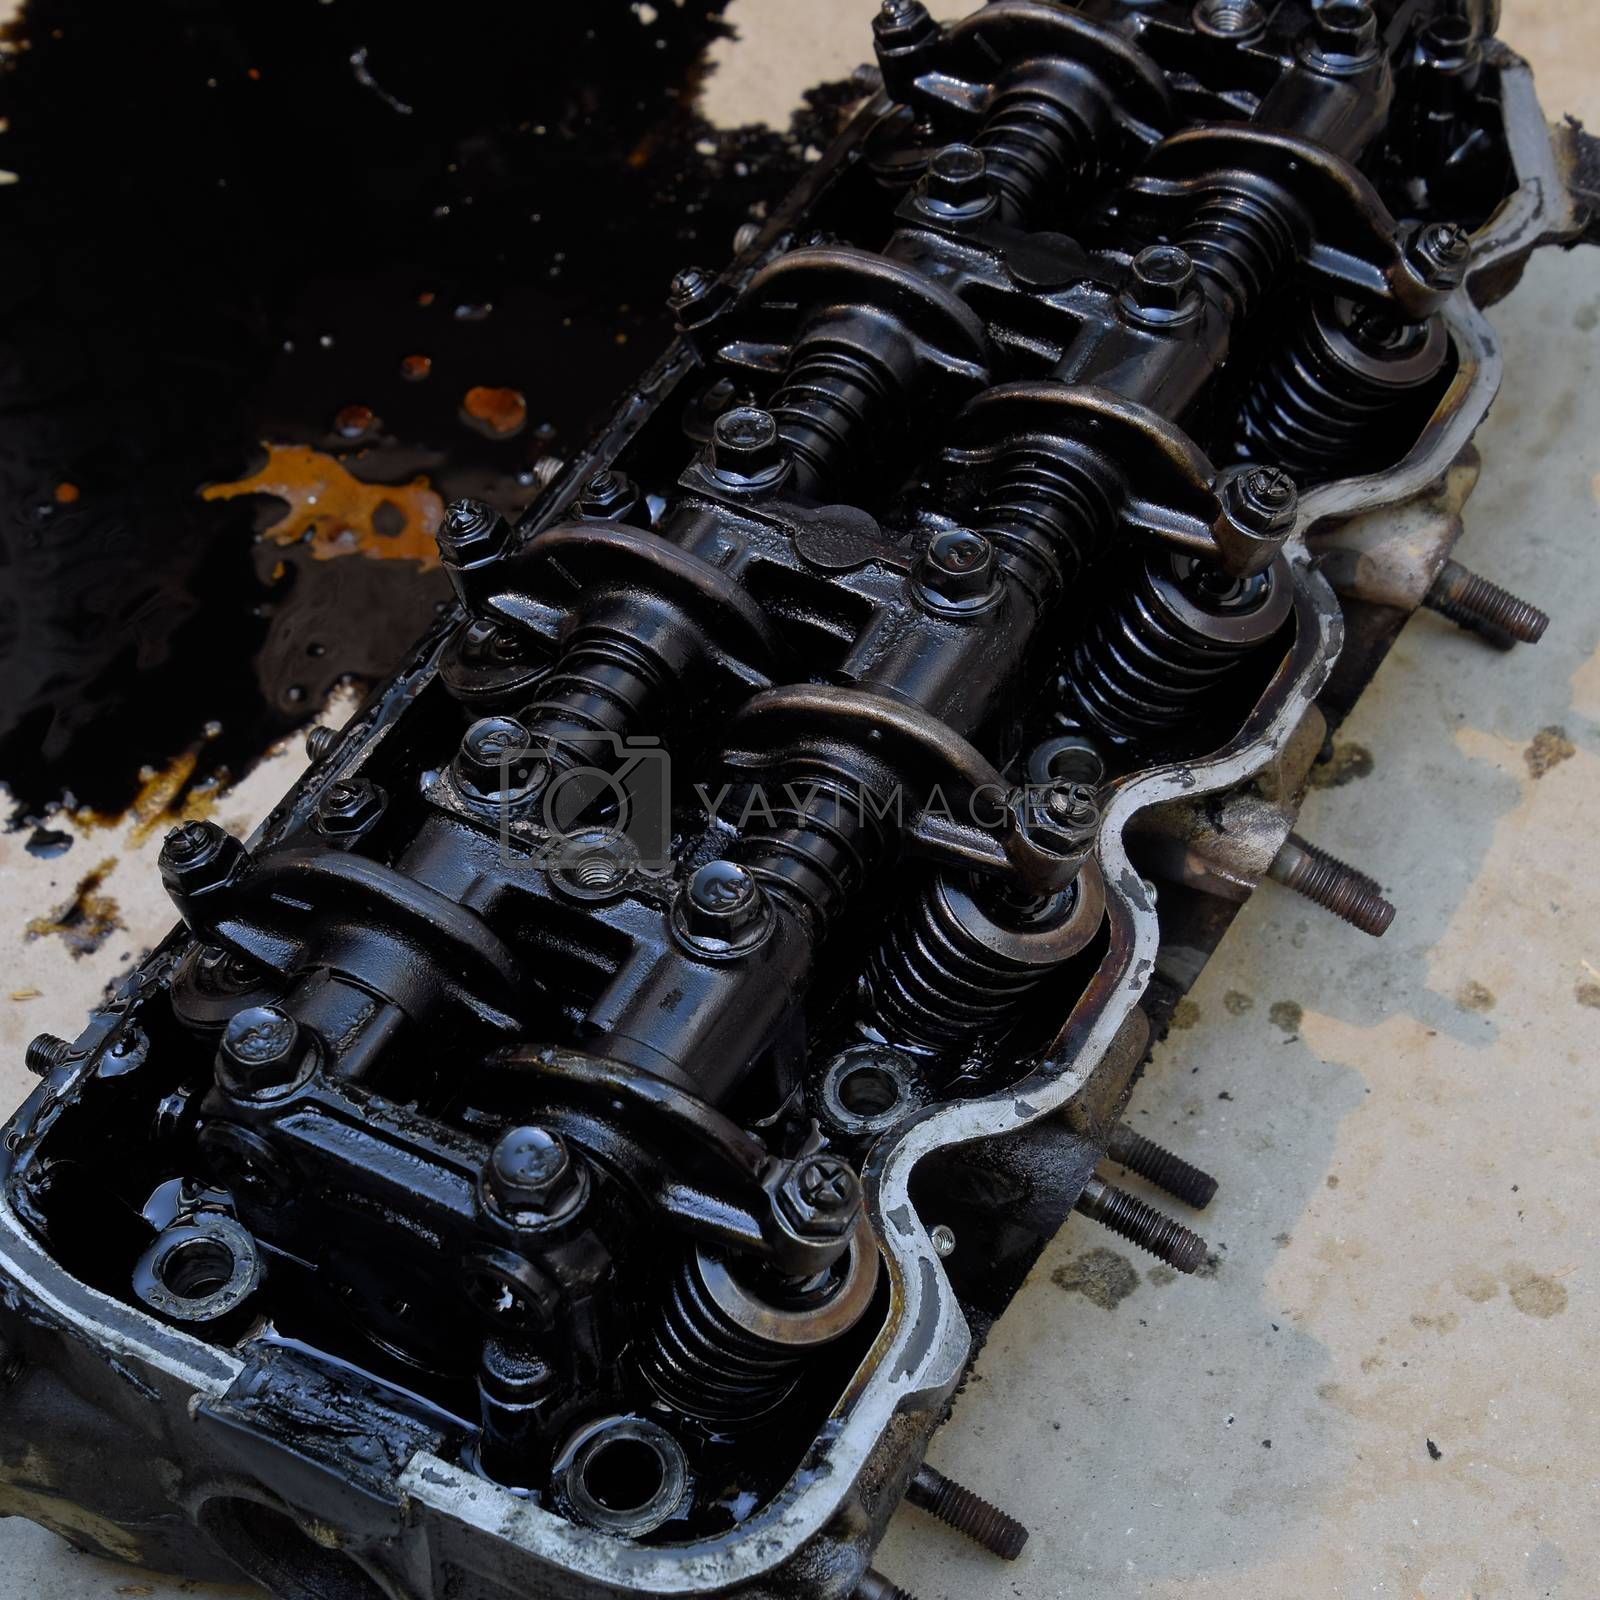 The head of the block of cylinders. The head of the block of cylinders removed from the engine for repair. Parts in engine oil. Car engine repair in the service.